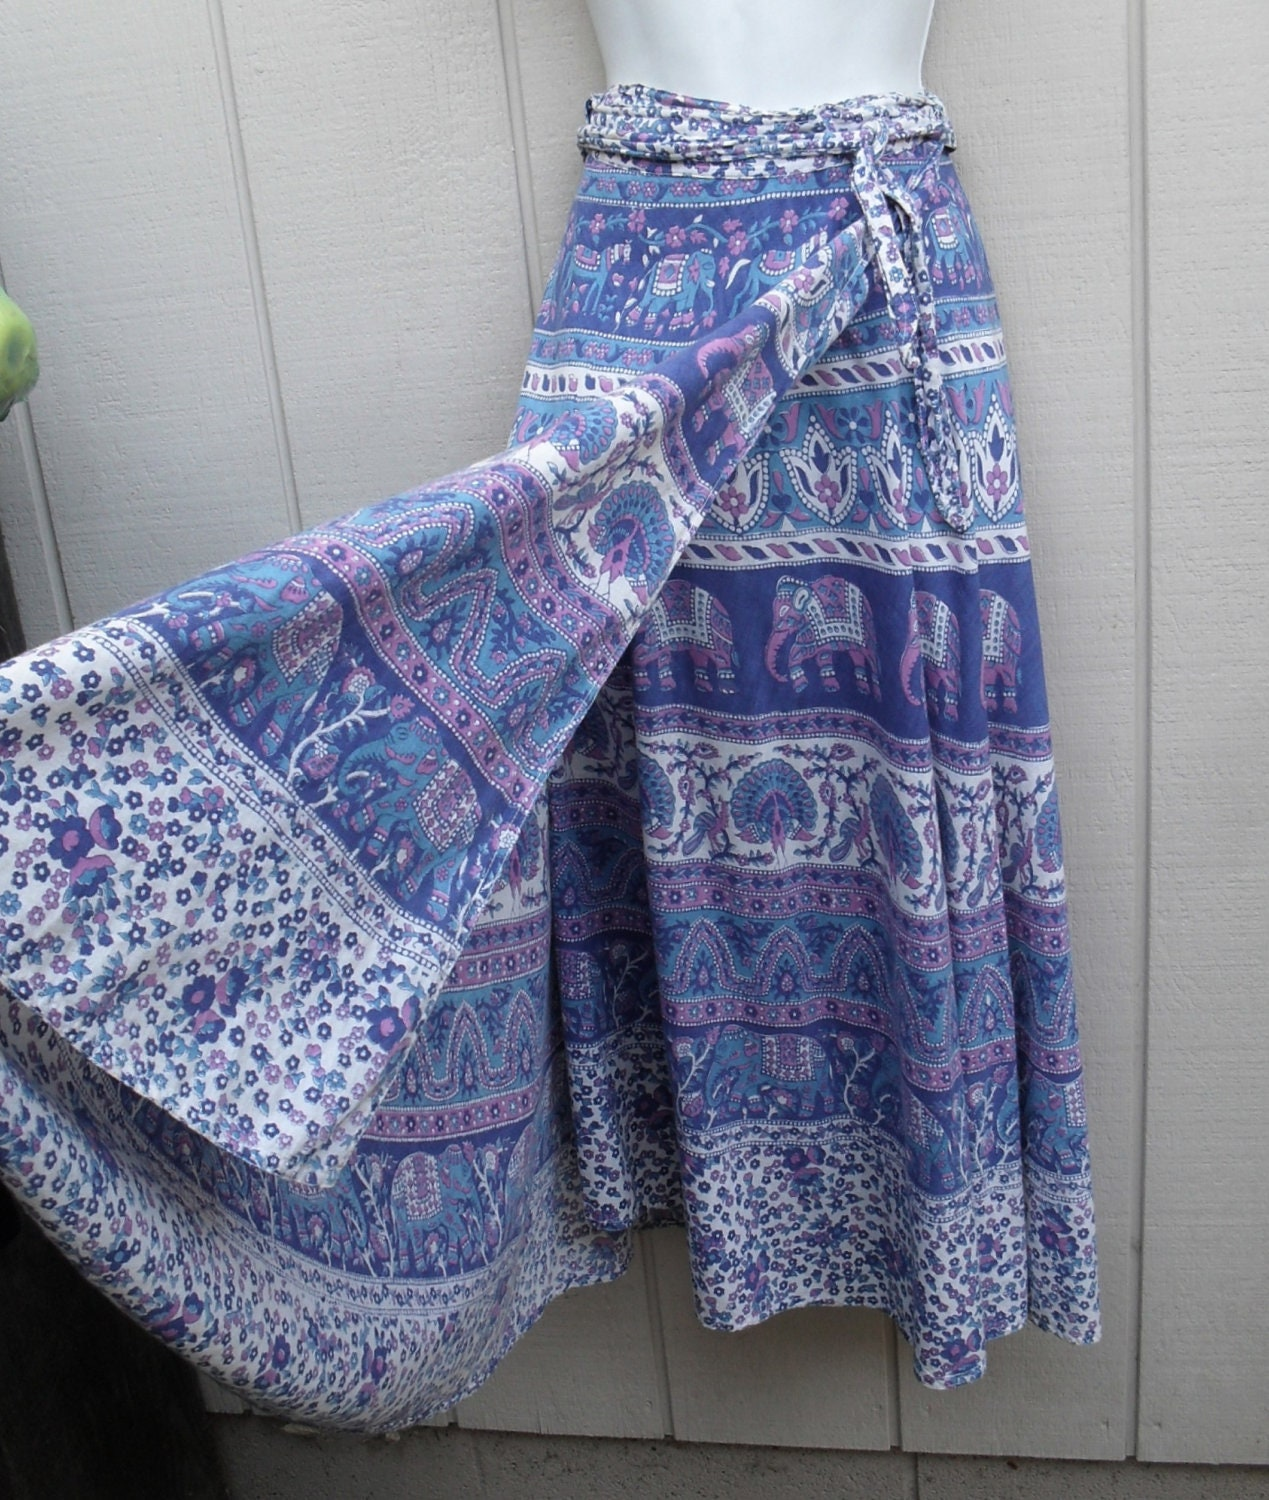 Vintage 70s Batik Cotton Indian Wrap Skirt Dress Elephants